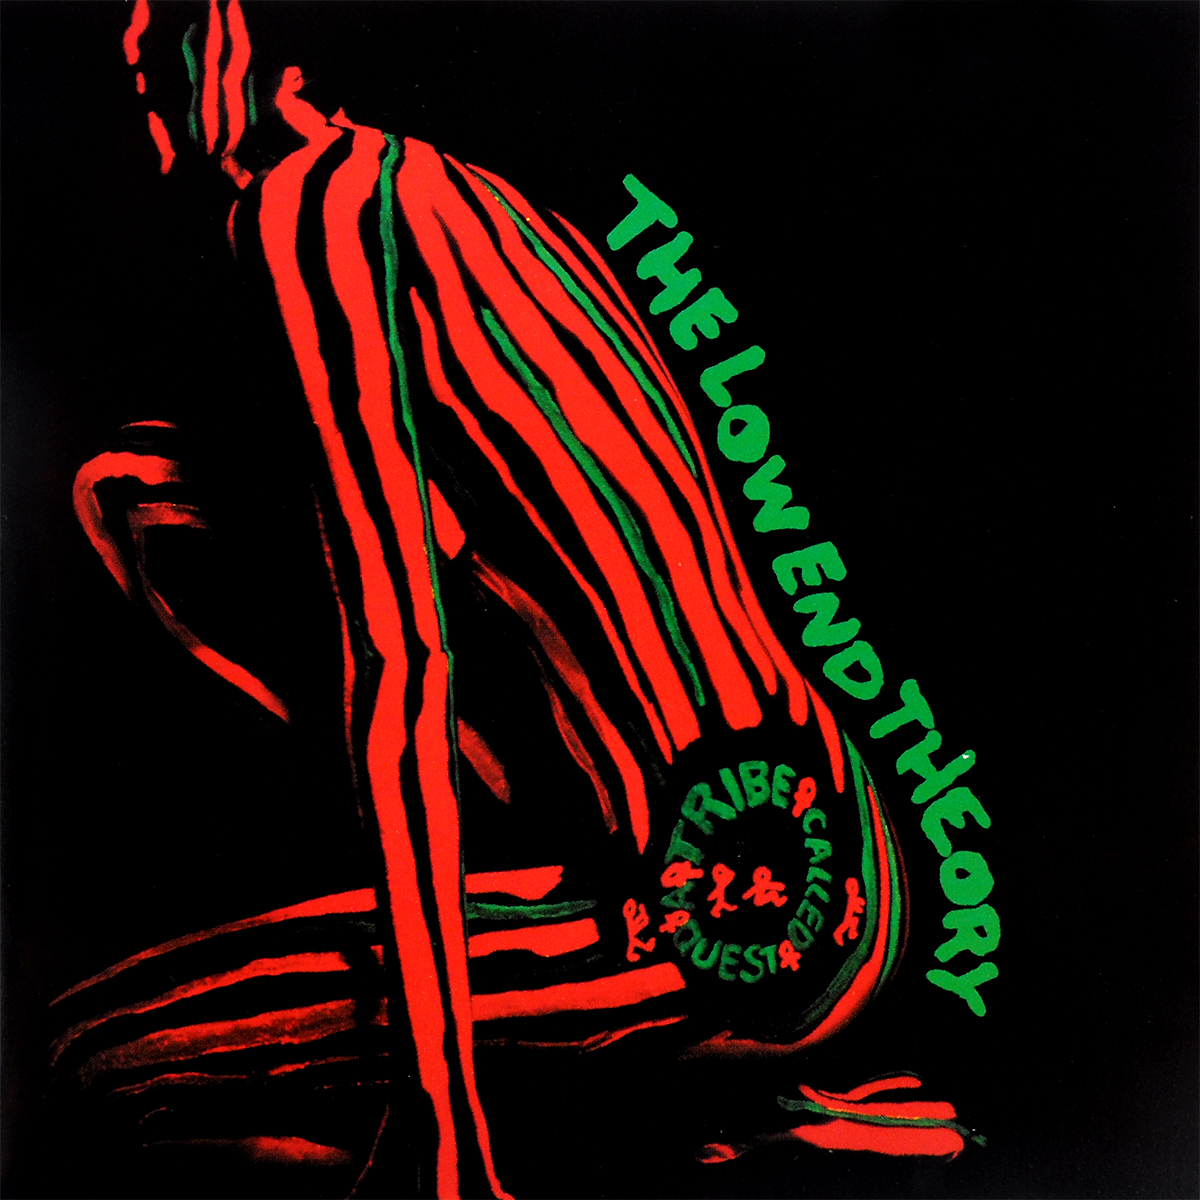 A Tribe Called Quest A Tribe Called Quest. The Low End Theory 15 6 сумка для ноутбука crown cmb 437 нейлоновая черная